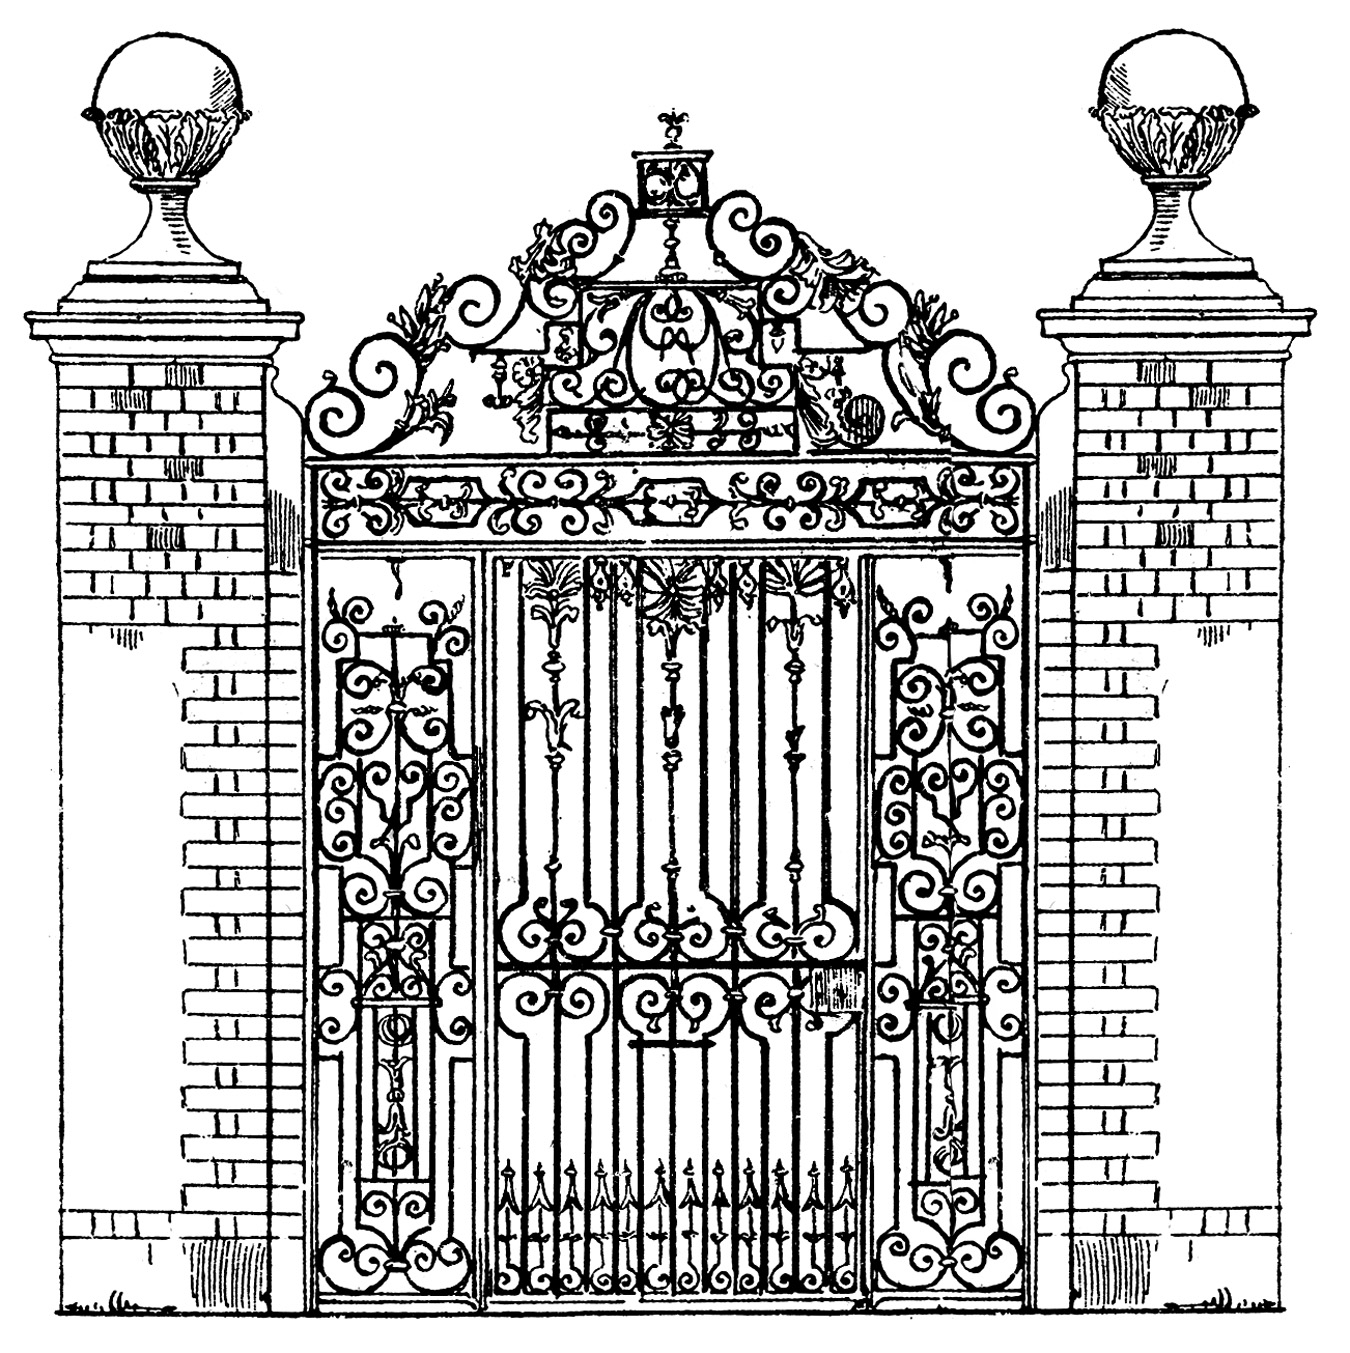 Vintage clip art ornate iron gate scrolls the